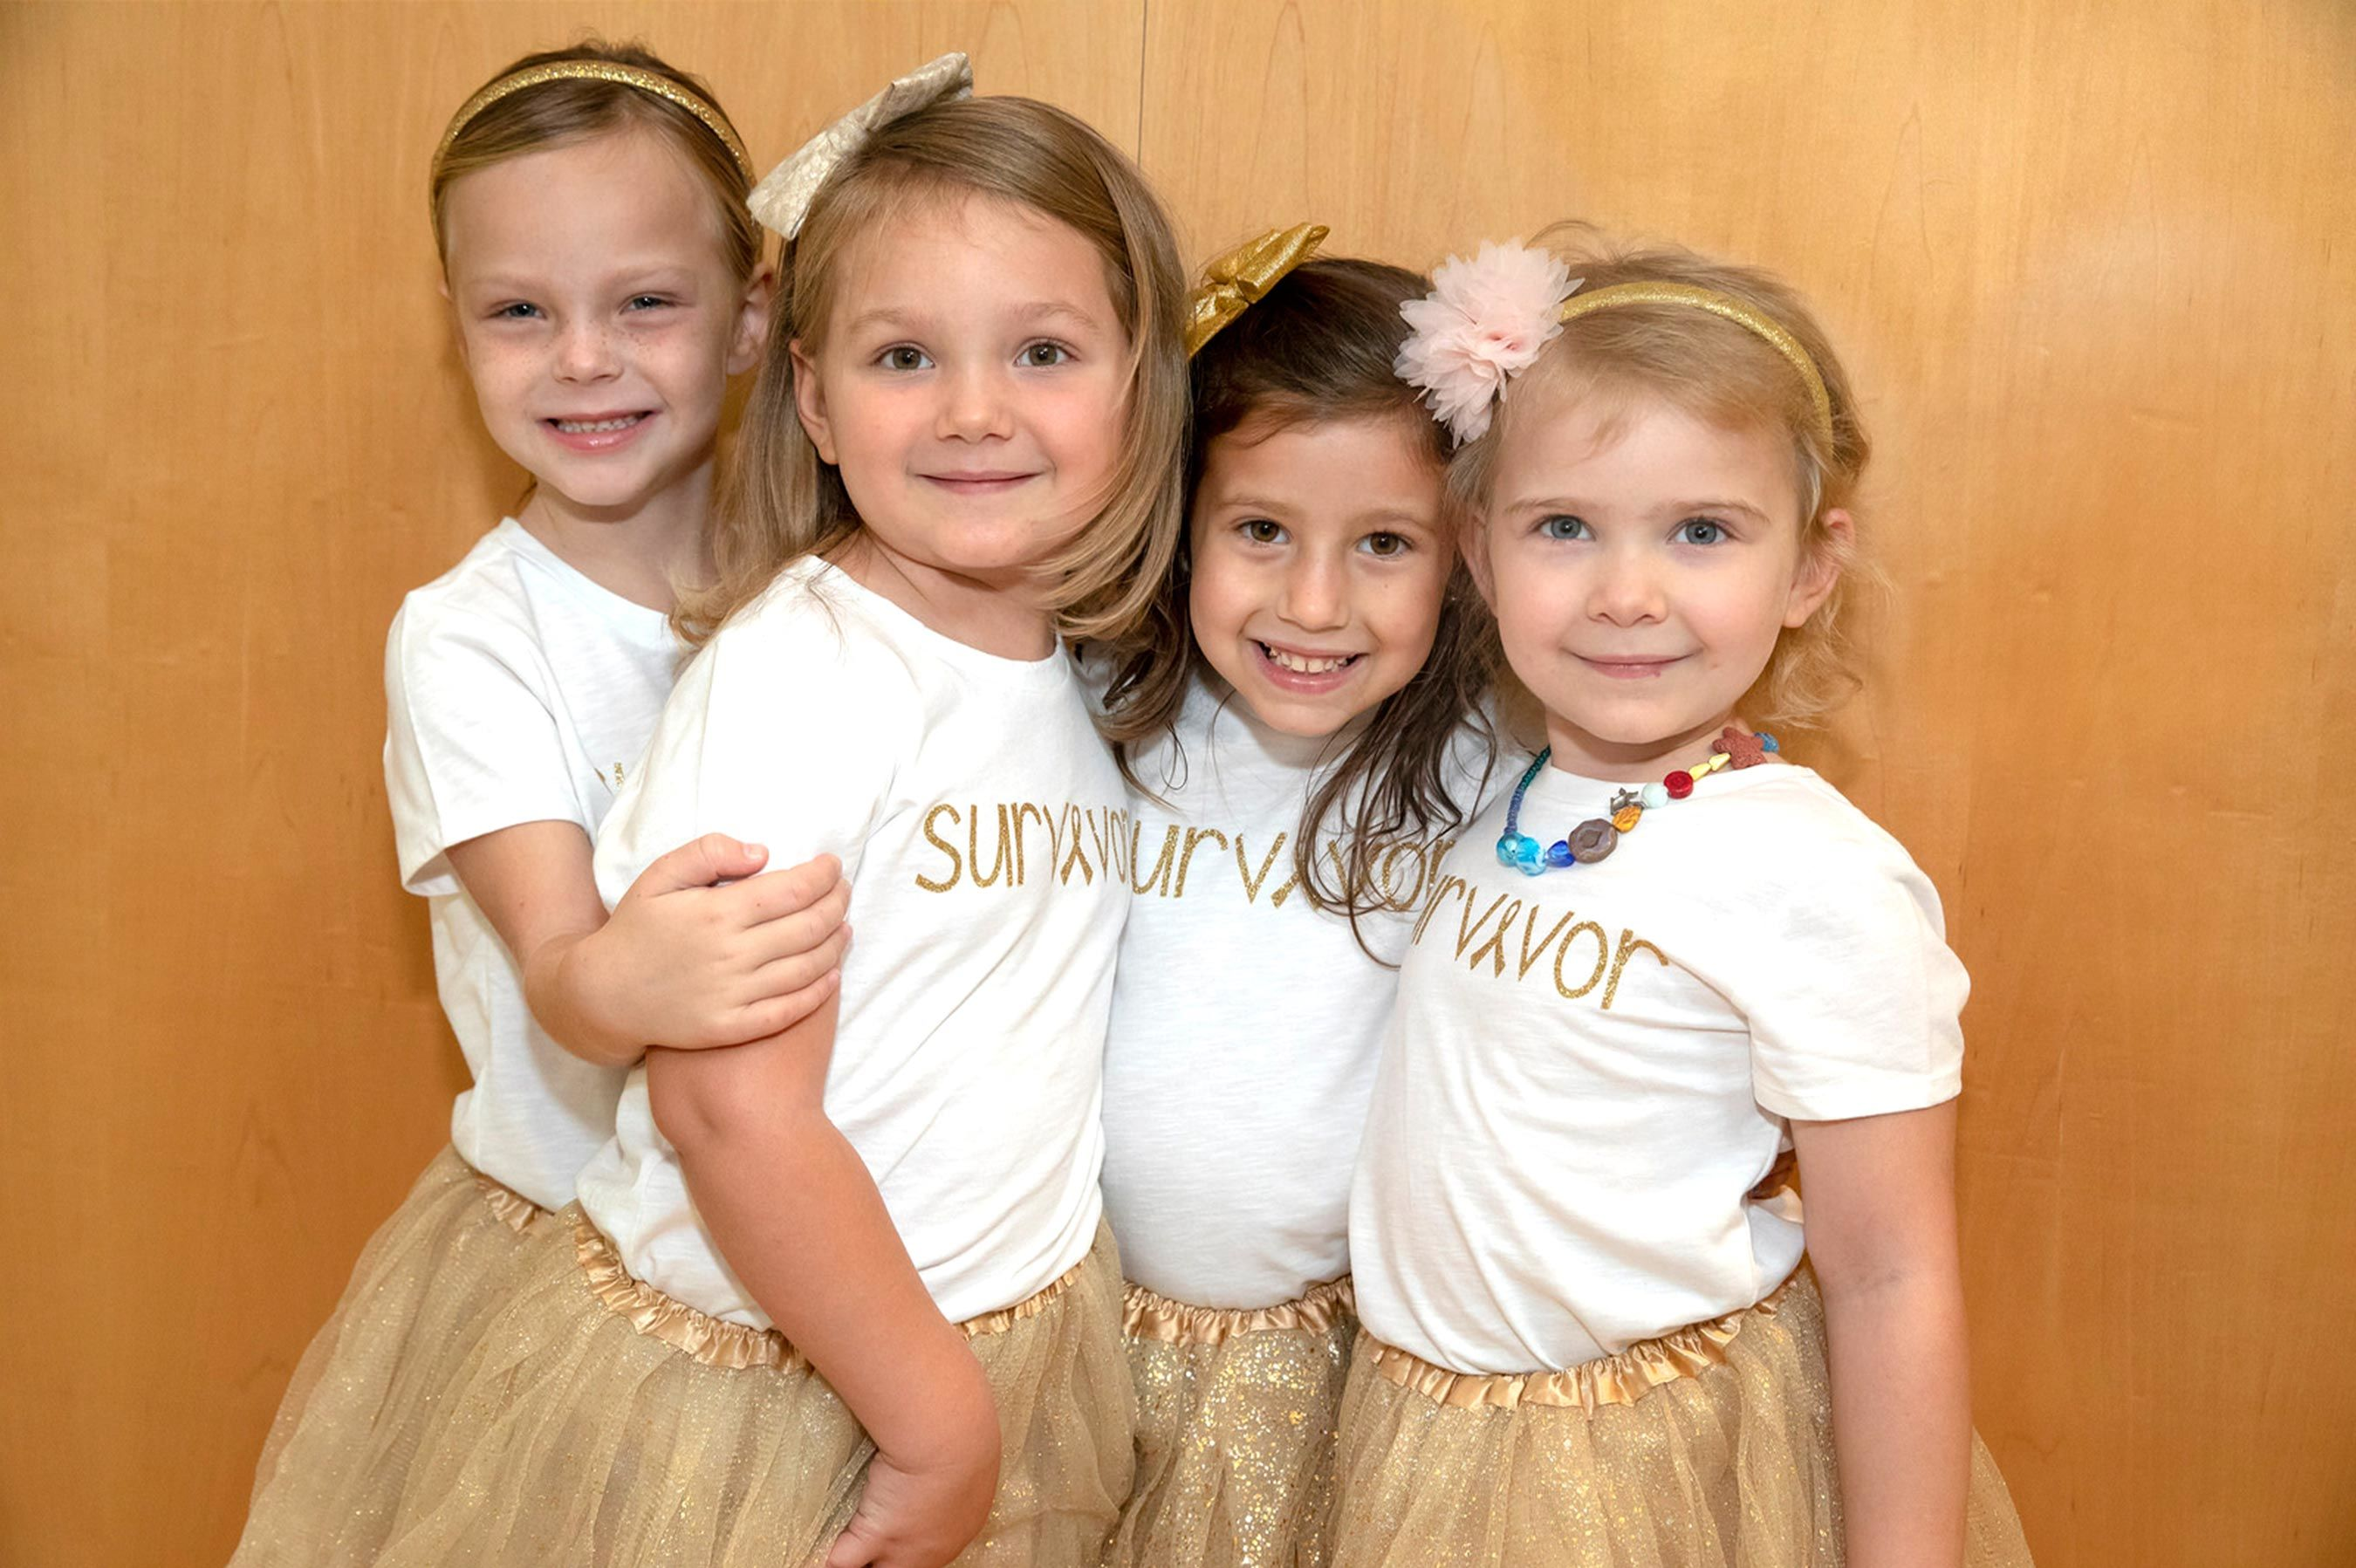 Four Girls Reunite After They Beat Cancer Together at the Same Hospital: 'It's Amazing to See'